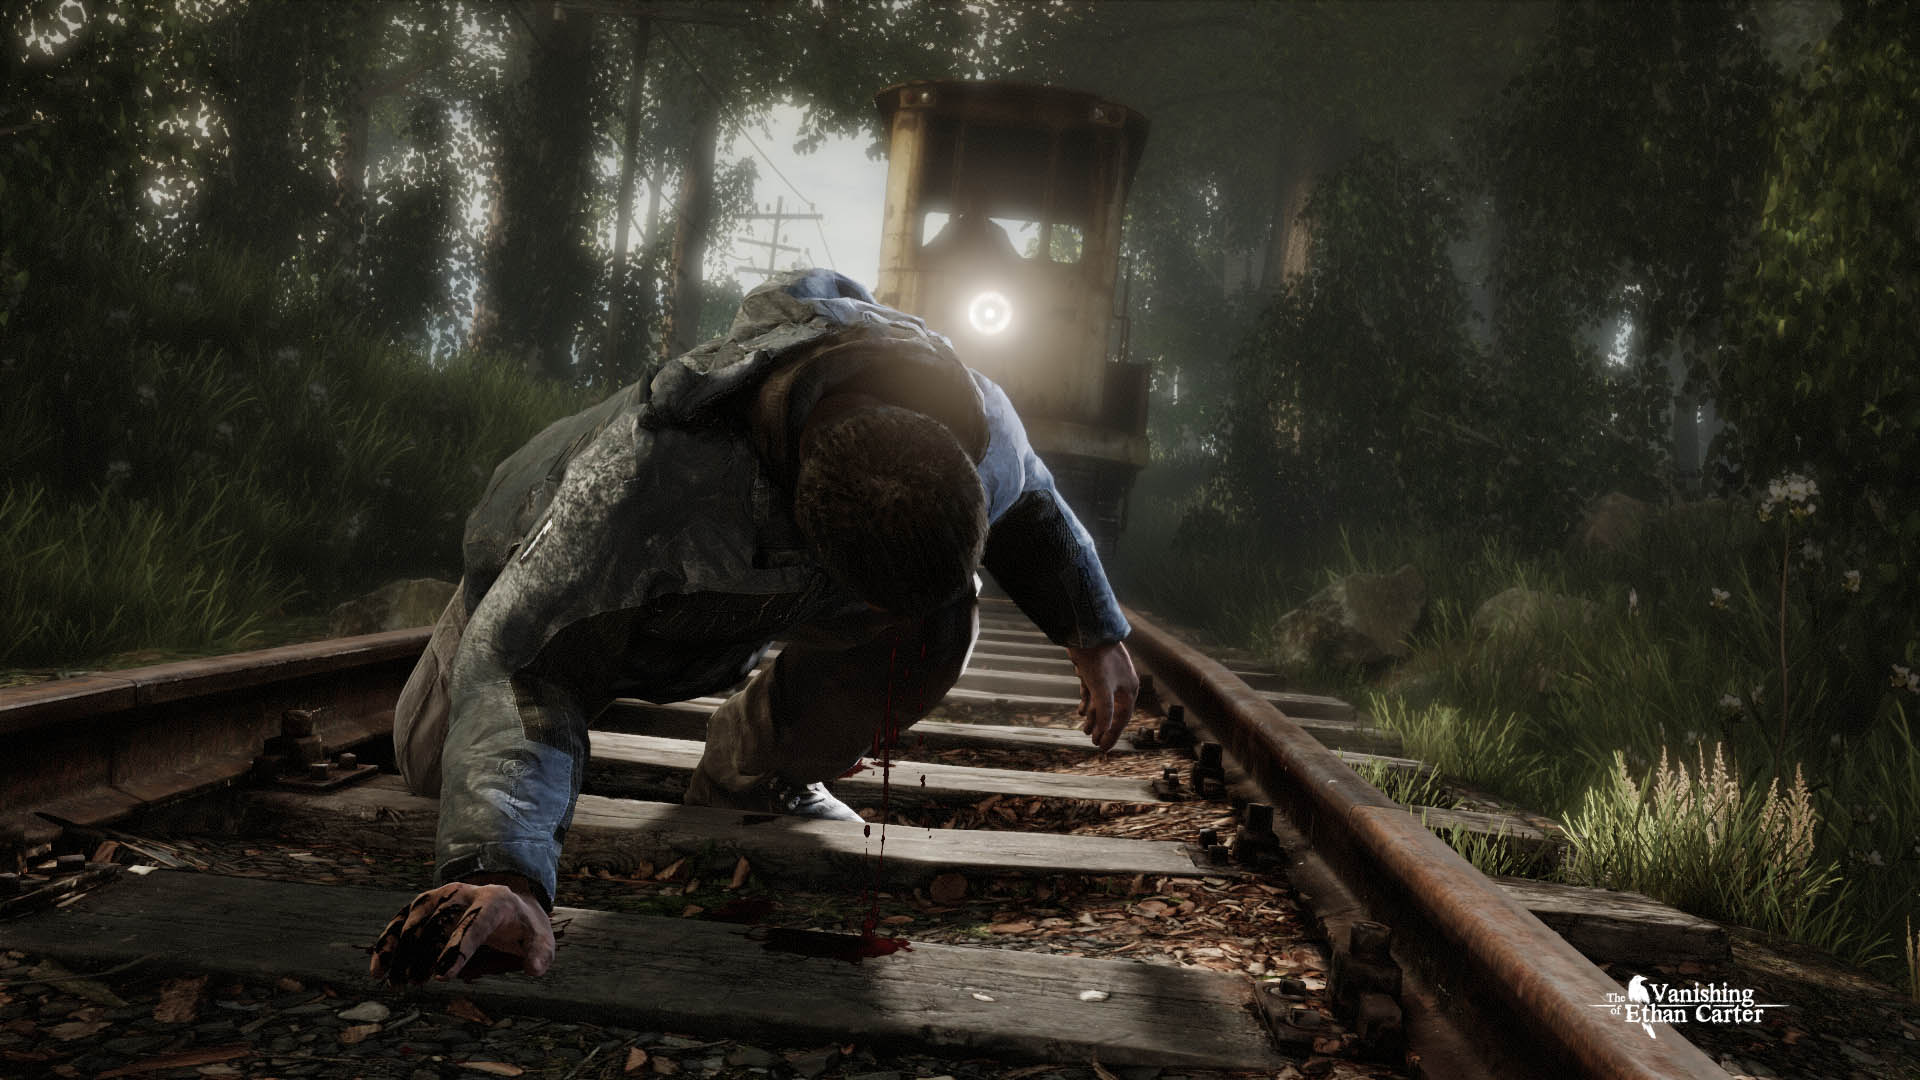 [GameGokil] The Vanishing of Ethan Carter [Iso] Single Link Direct Link Full Version